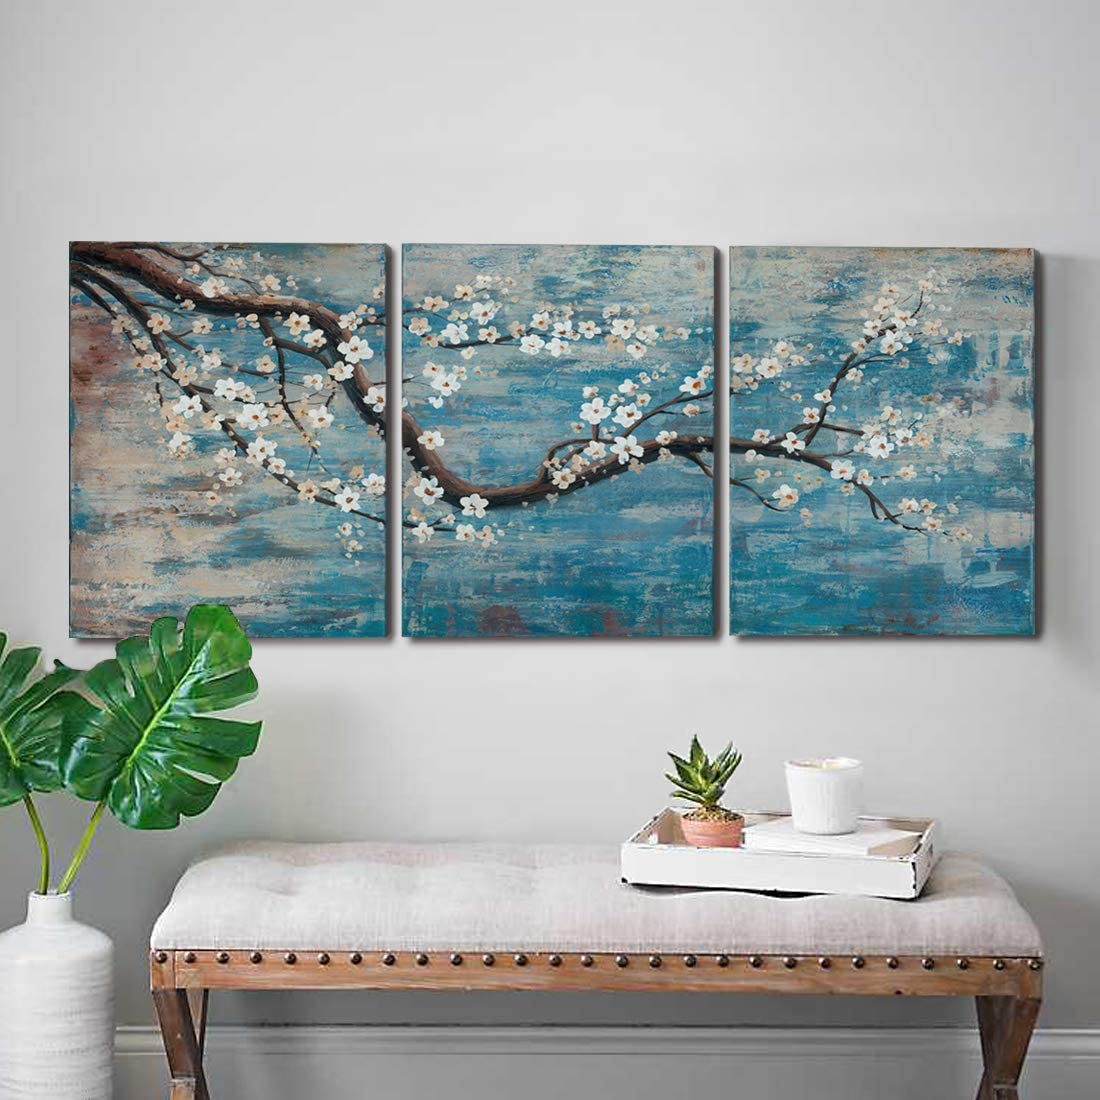 Ejart 3 Piece Wall Art Hand-Painted Framed Flower Oil Painting On Canvas Gallery Wrapped Modern Floral Artwork for Living Room Bedroom D cor Teal Blue Lake Ready to Hang 36 x16